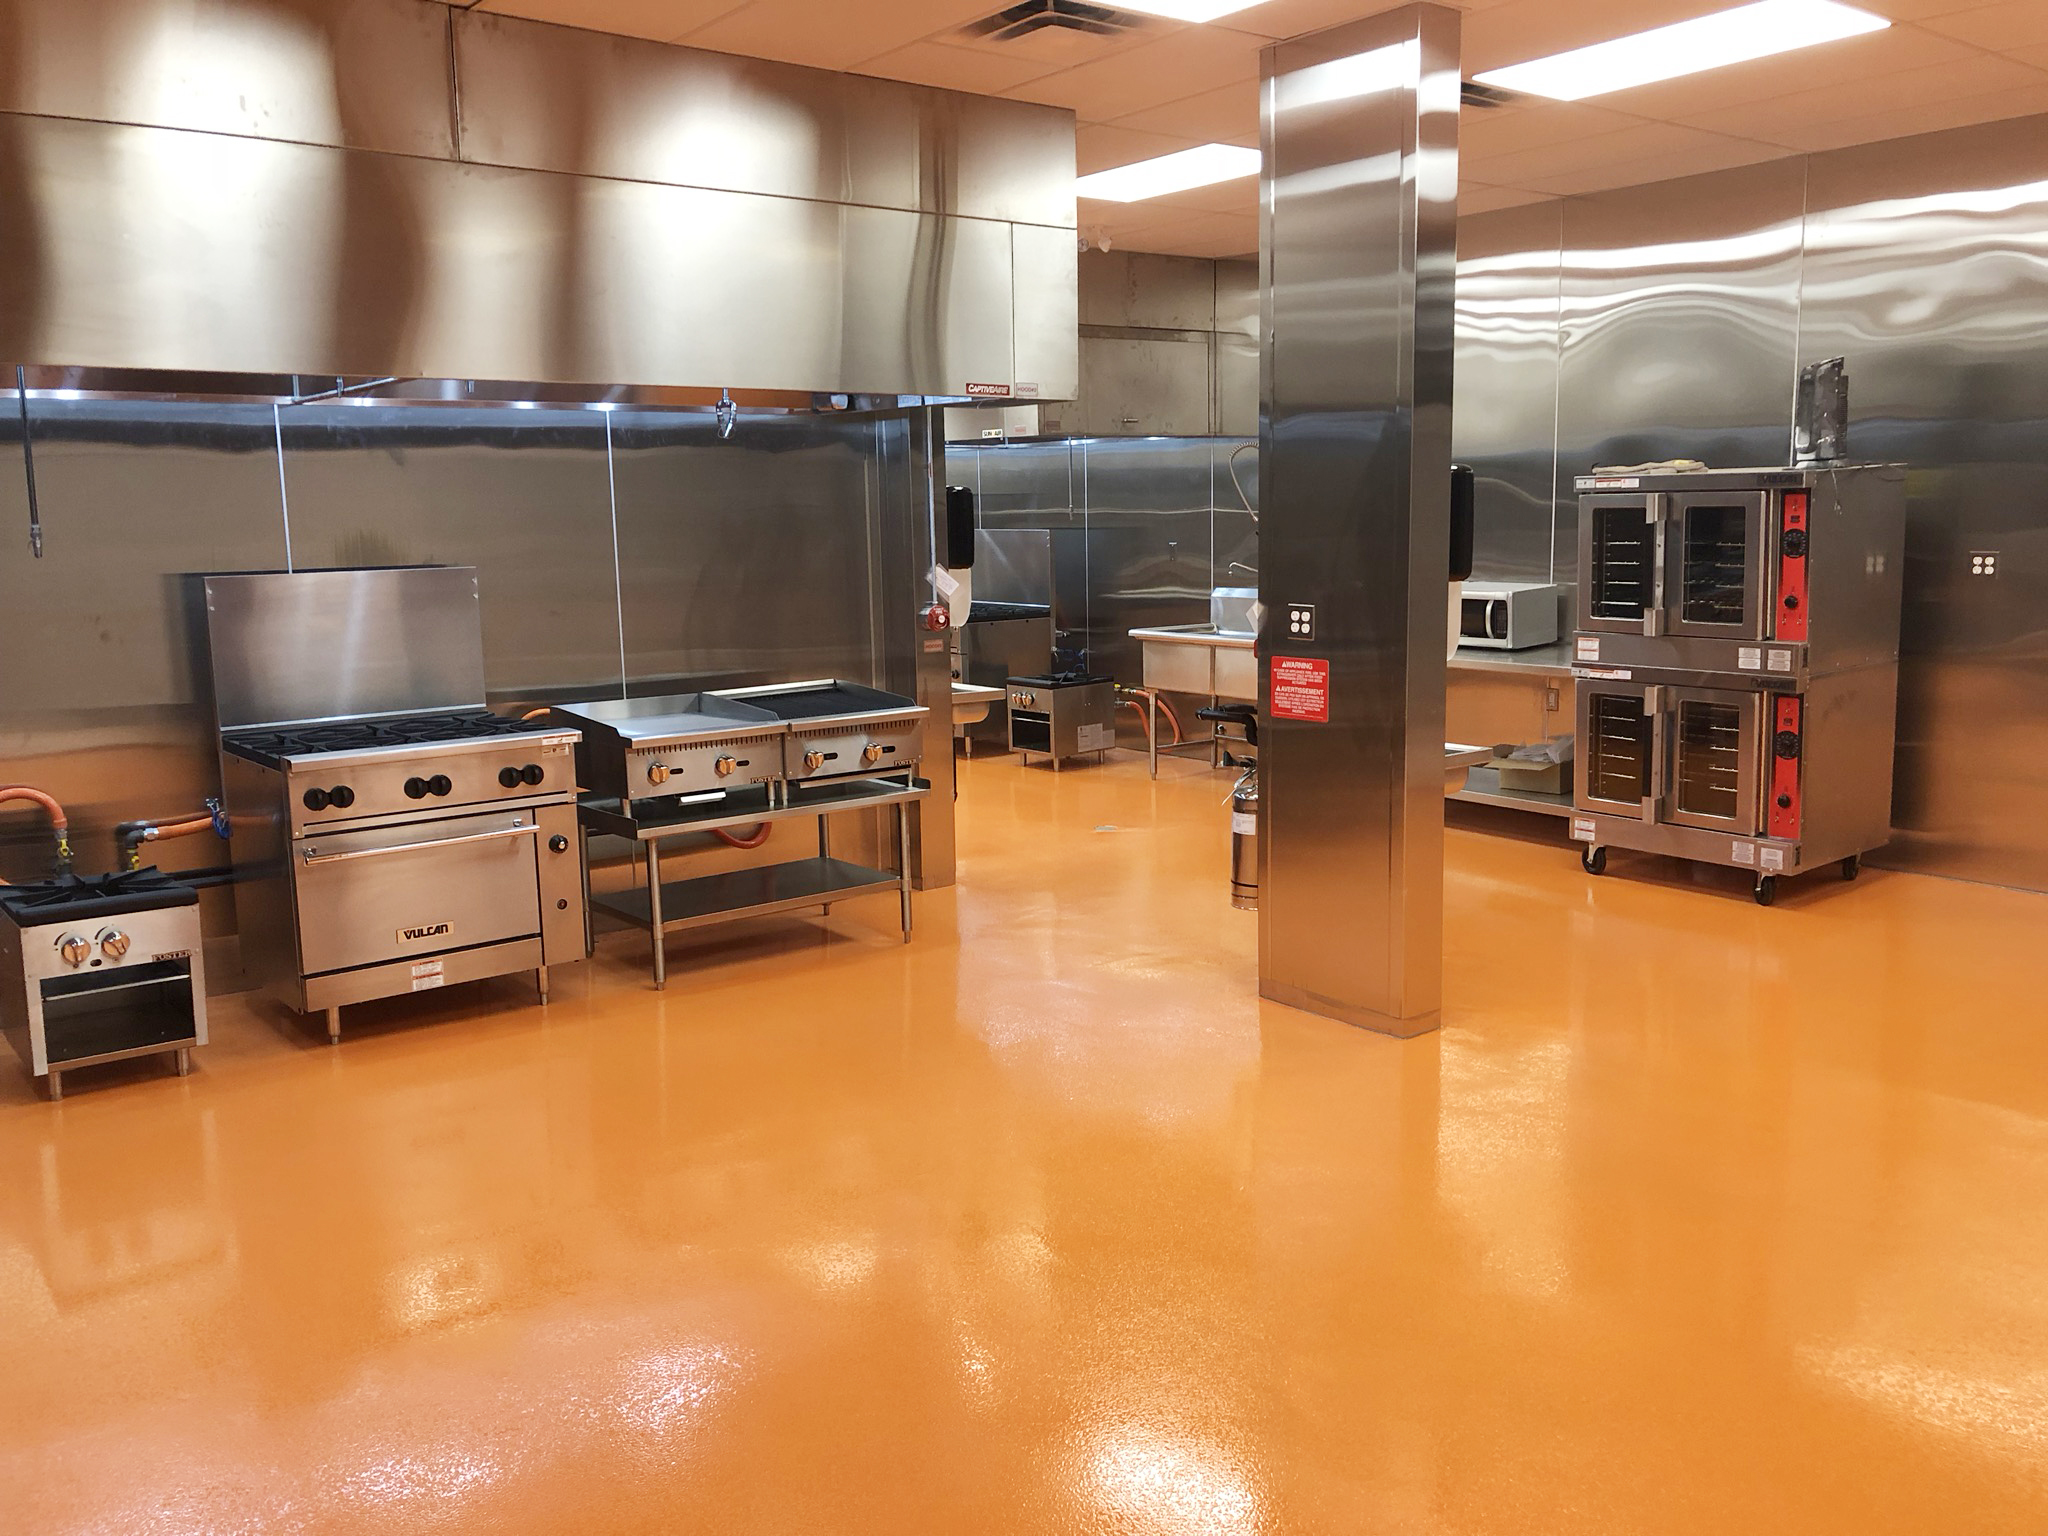 Orange_kitchen_epoxy.jpg